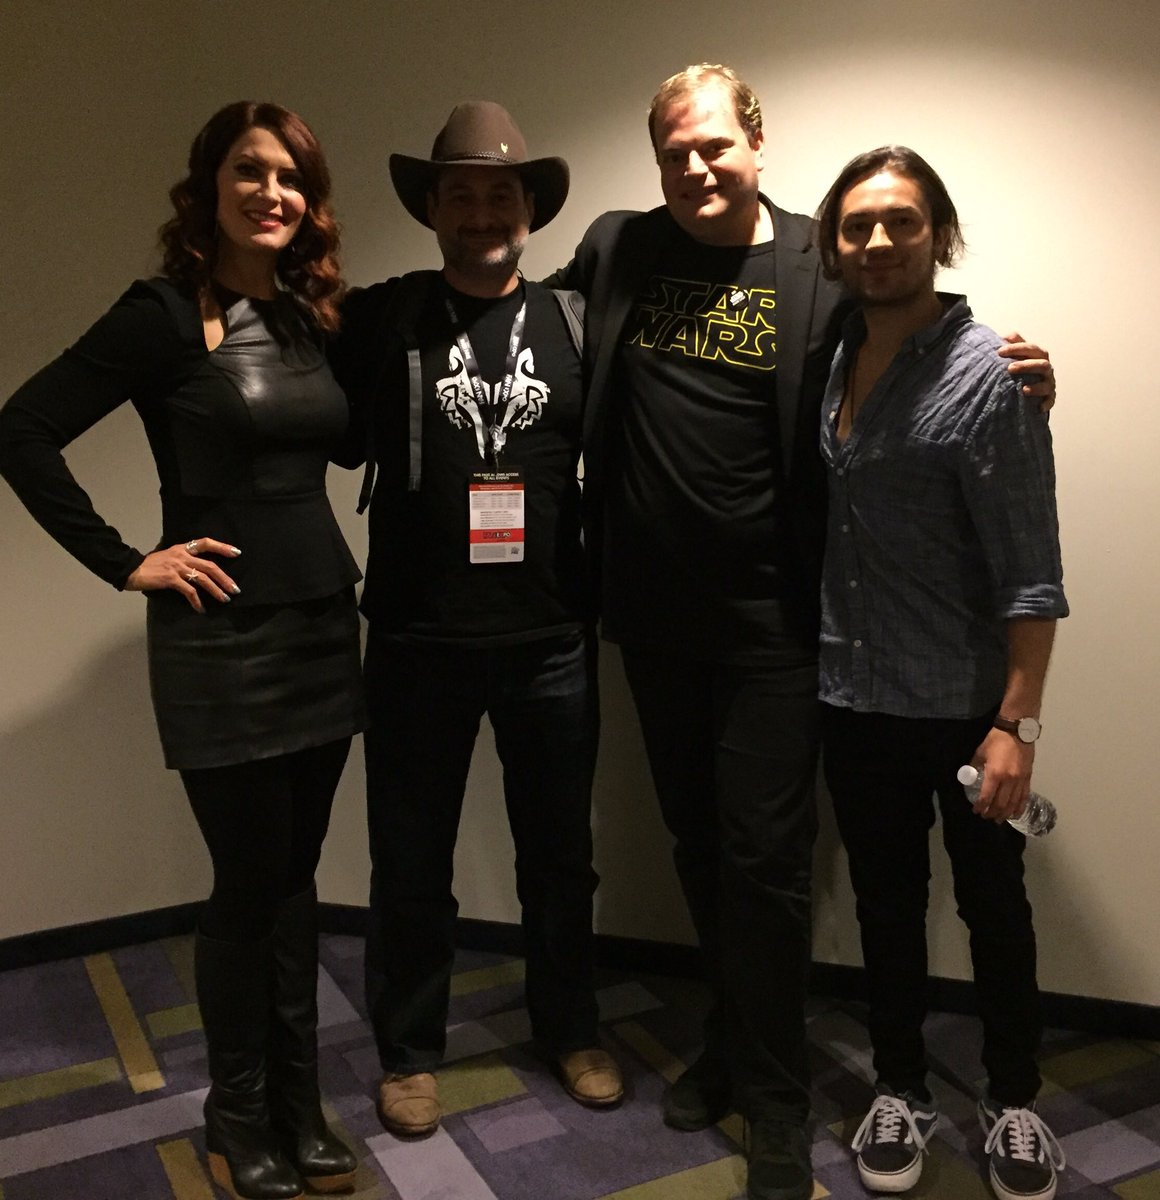 Great panel @FANEXPOCANADA for #StarWarsRebels Season 4! Thanks @Tcann13 @starwars https://t.co/ASImWEts4X